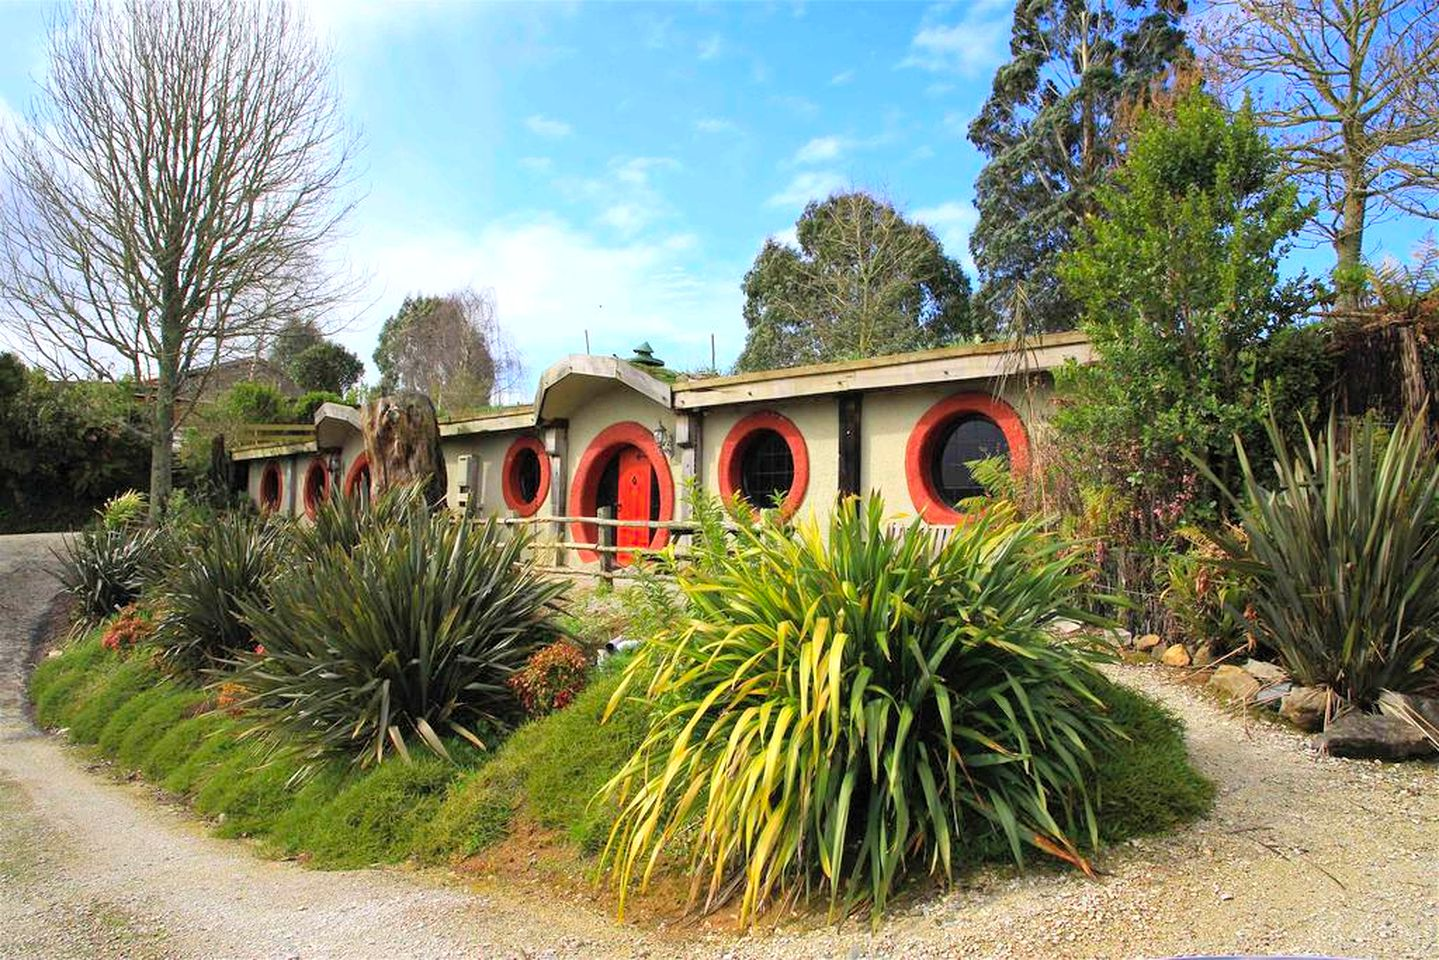 the hobbit motel, New Zealand (Otorohanga, North Island, New Zealand)